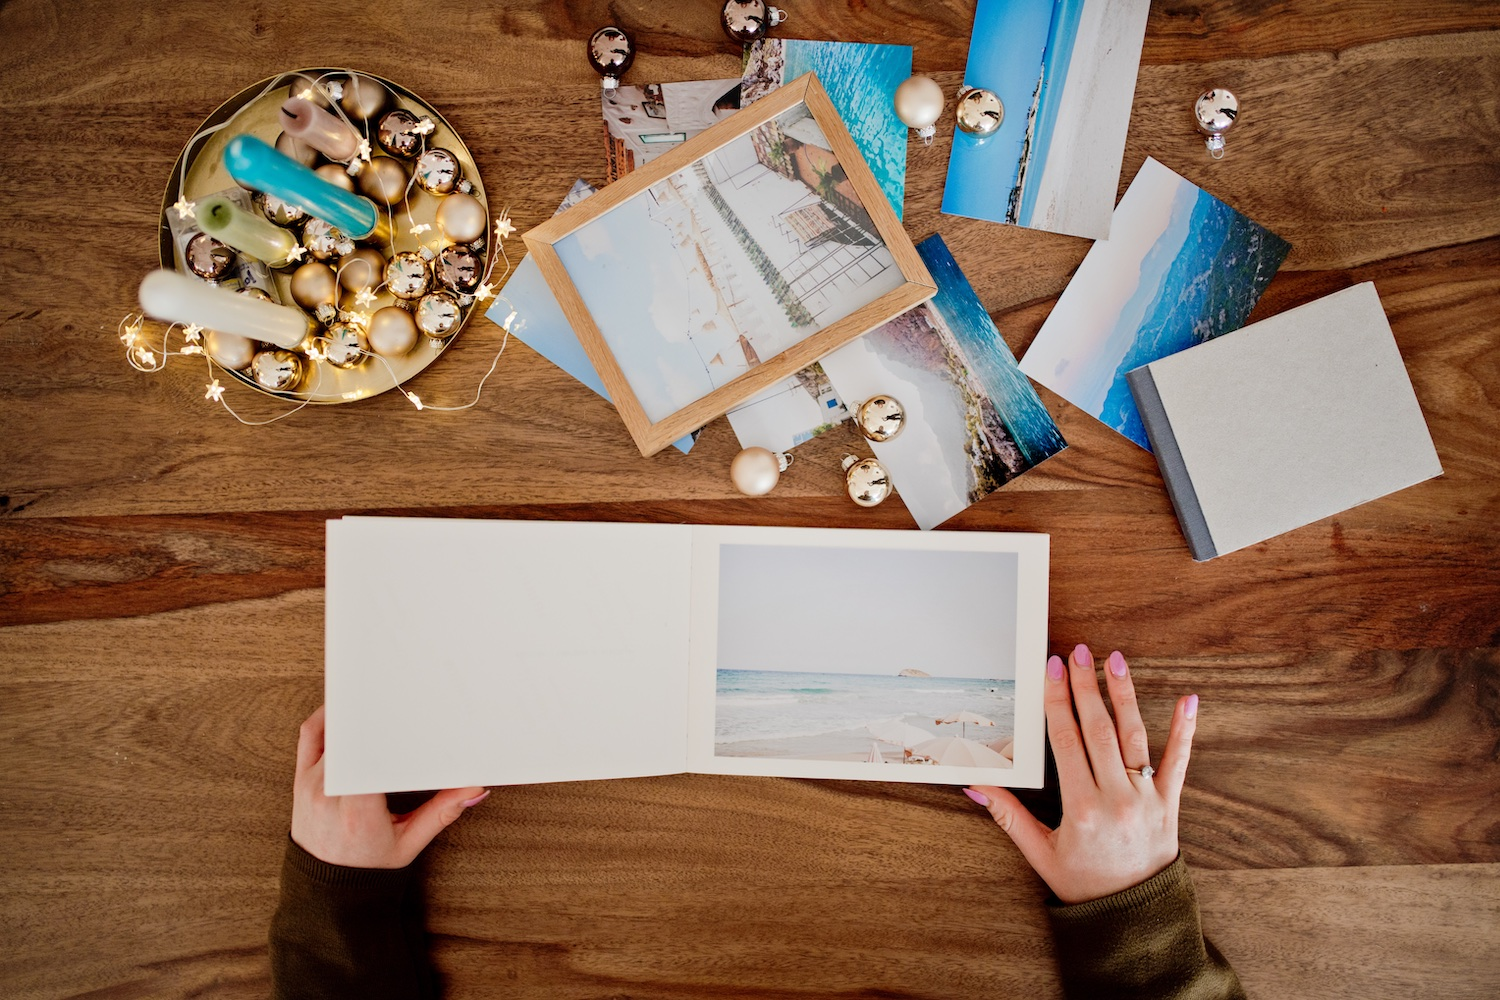 Gift ideas | Giving memories with photos – always a good idea!